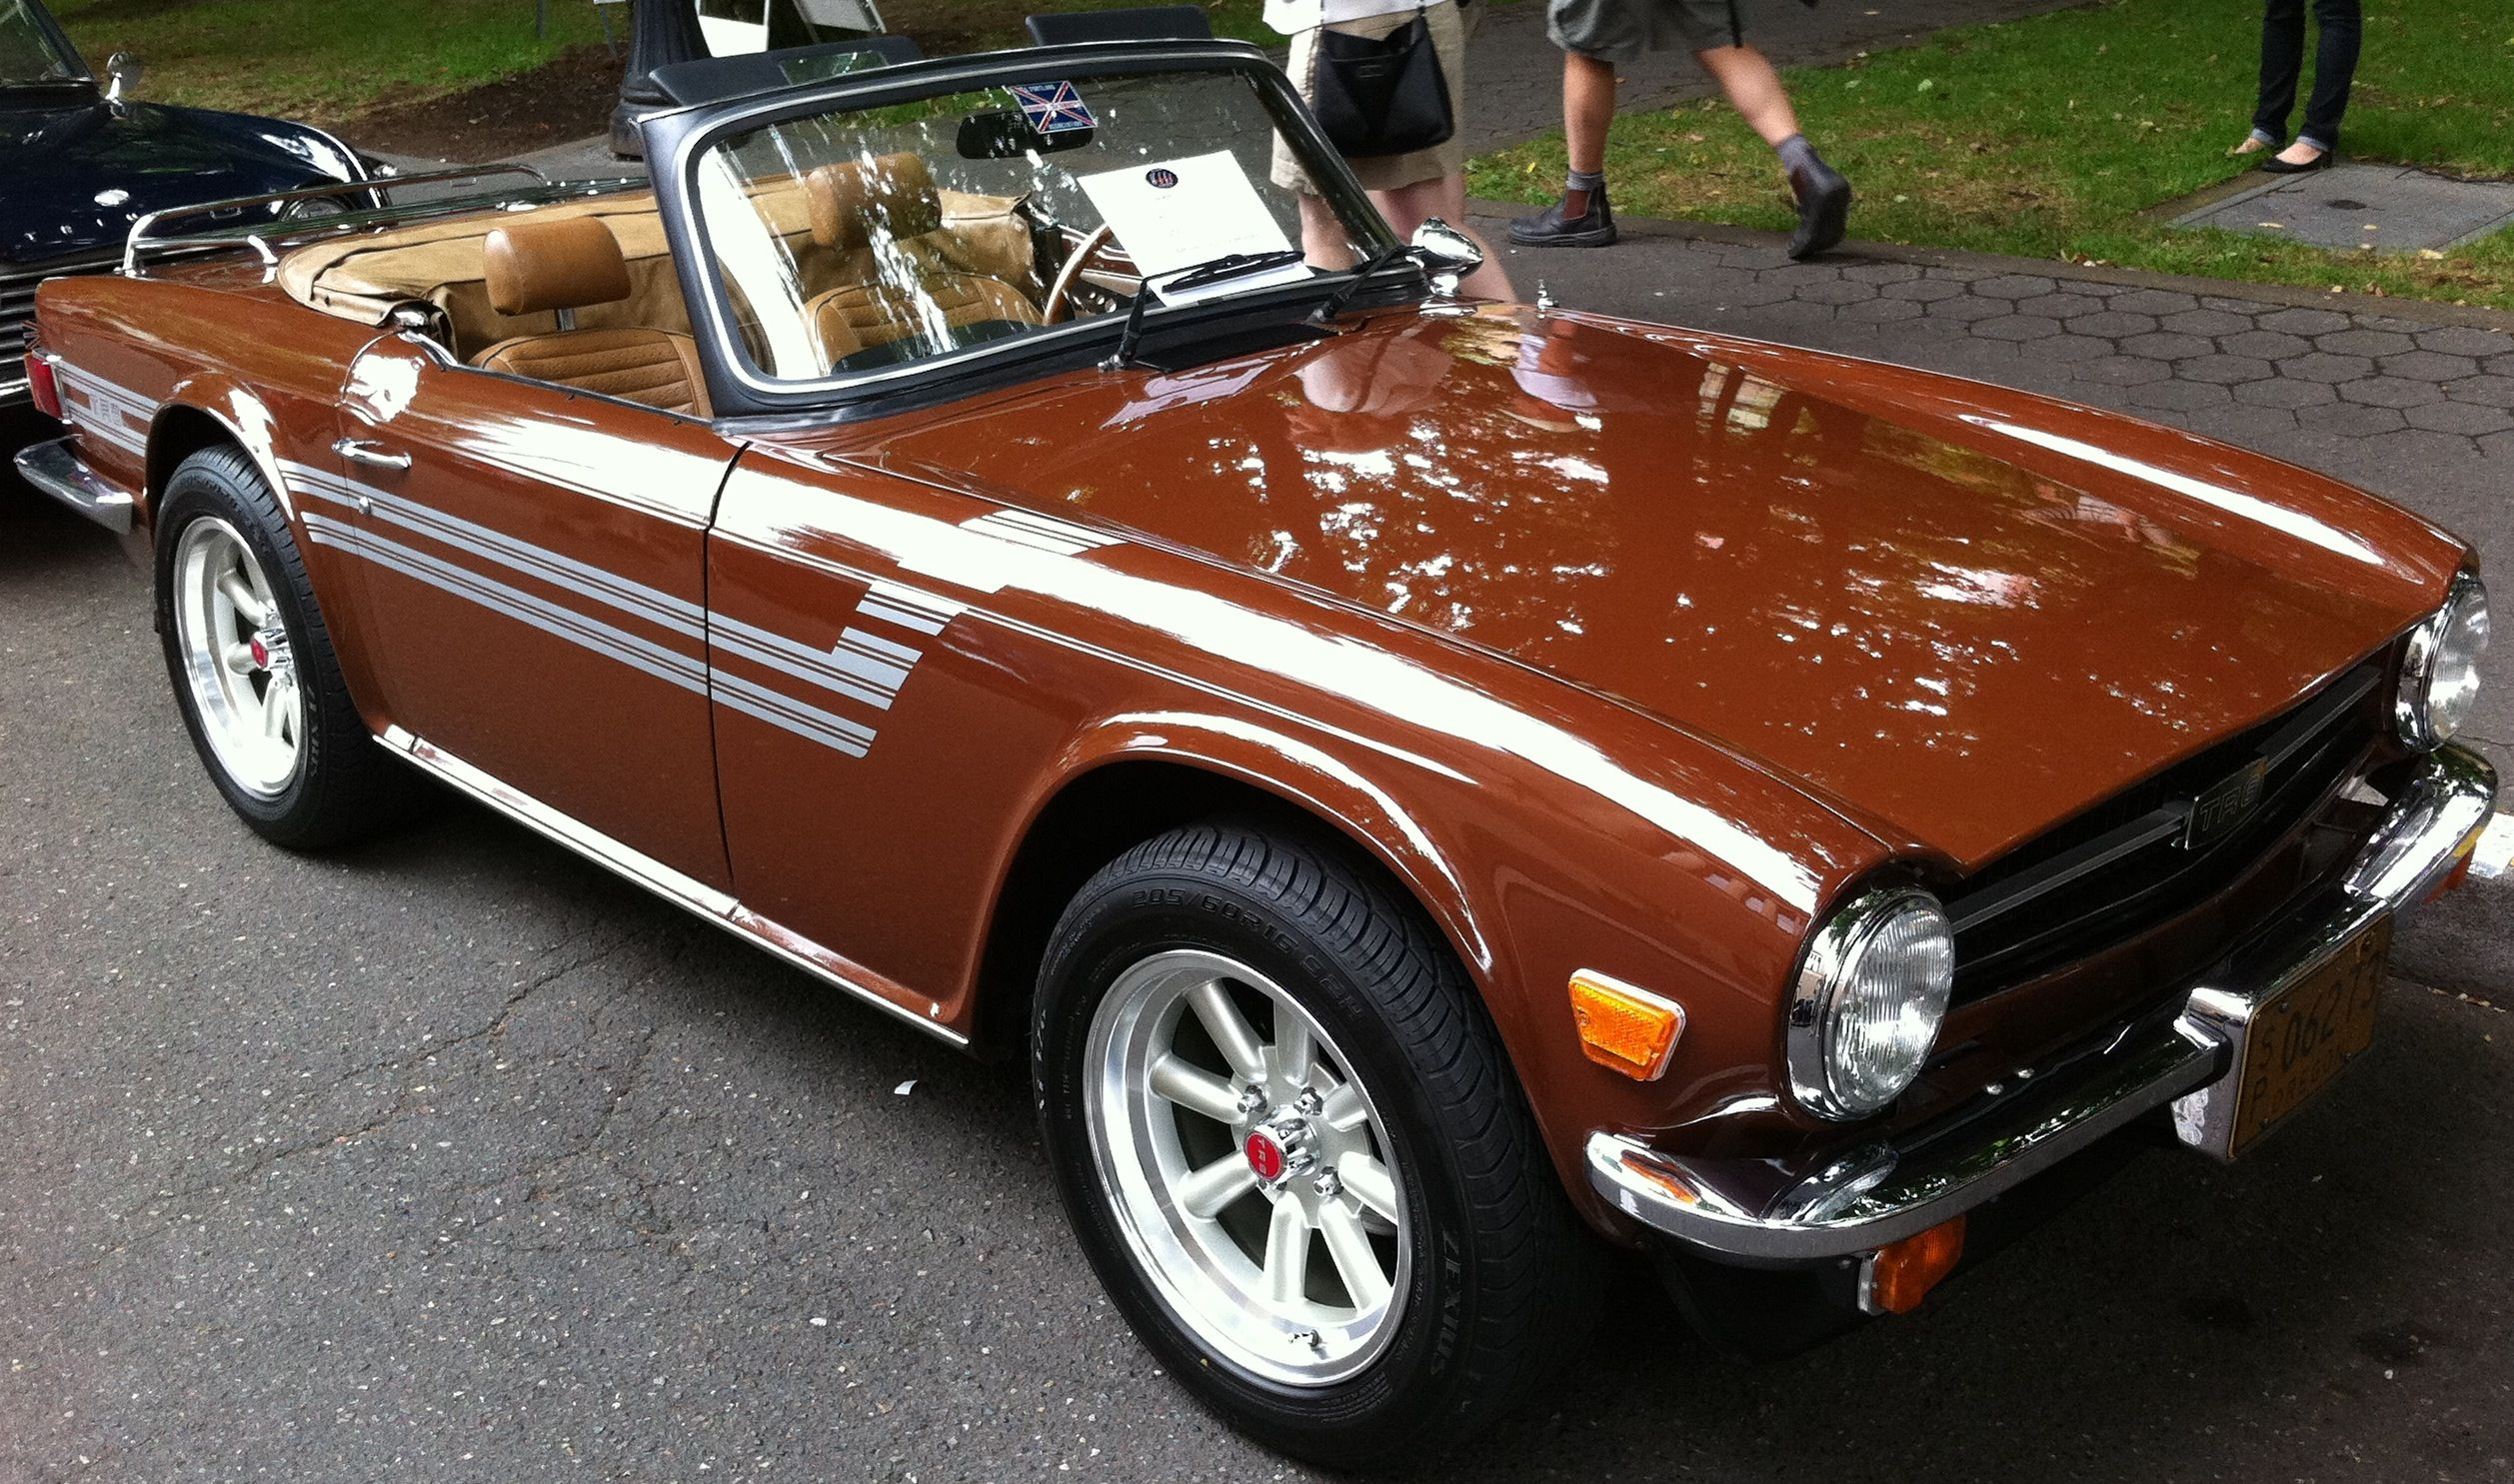 Pin by Myrna Fanney on Memories | Classic sports cars